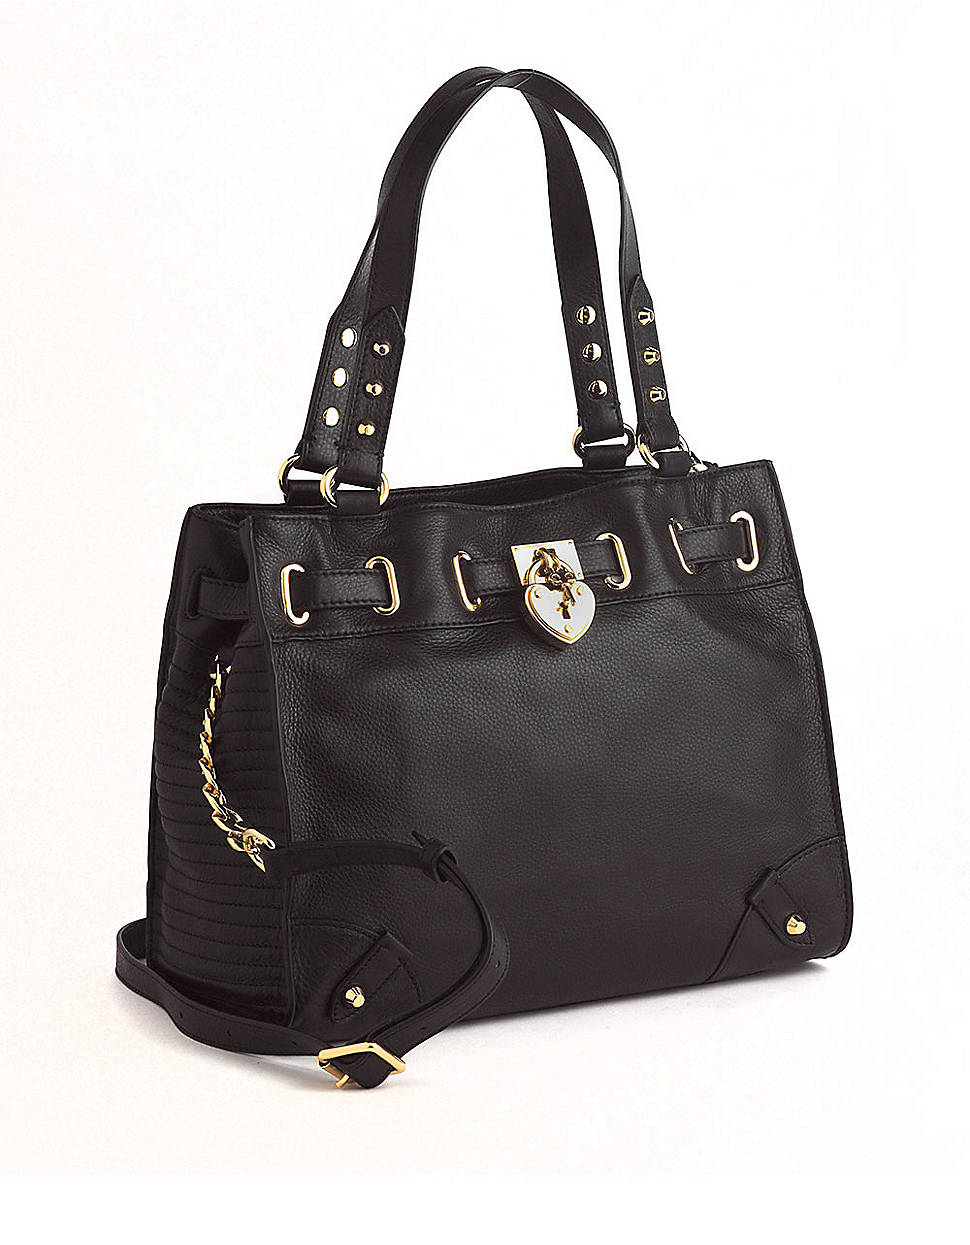 juicy couture daydreamer leather crossbody tote bag in black lyst. Black Bedroom Furniture Sets. Home Design Ideas